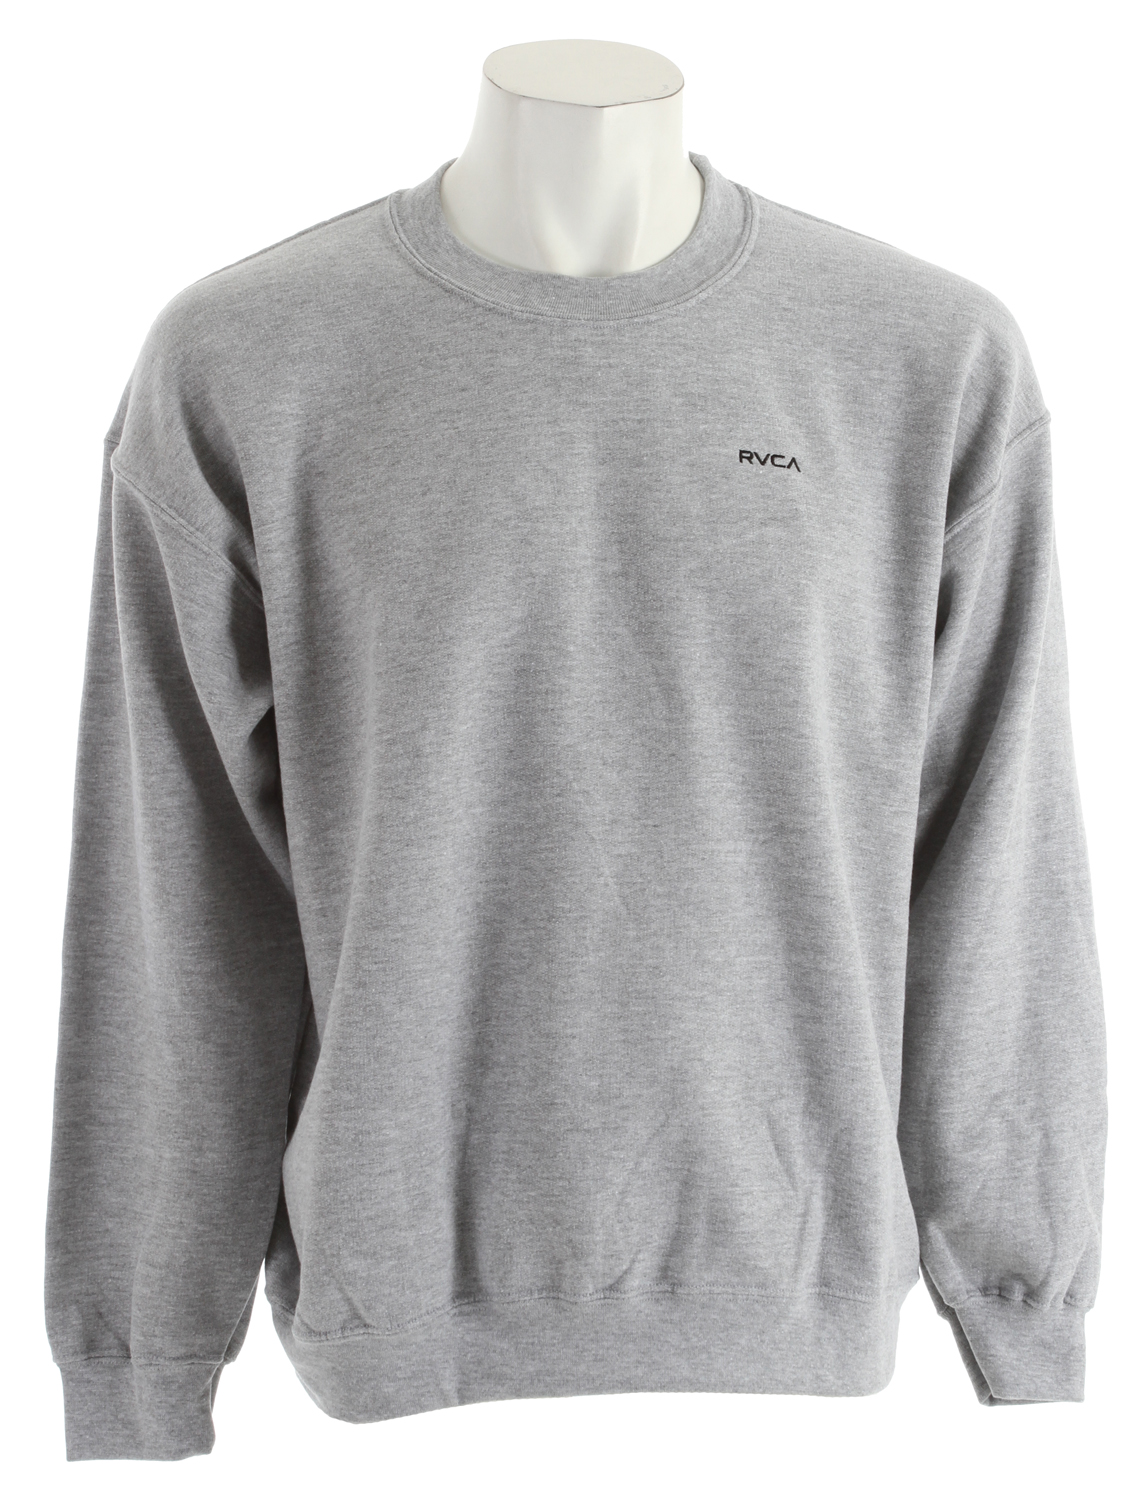 Key Features of the RVCA Little RVCA Crew Sweatshirt: 80% cotton/20% polyester lightweight fleece pullover crew Rib cuffs and waistband Front embroidery with inside neck print - $33.95